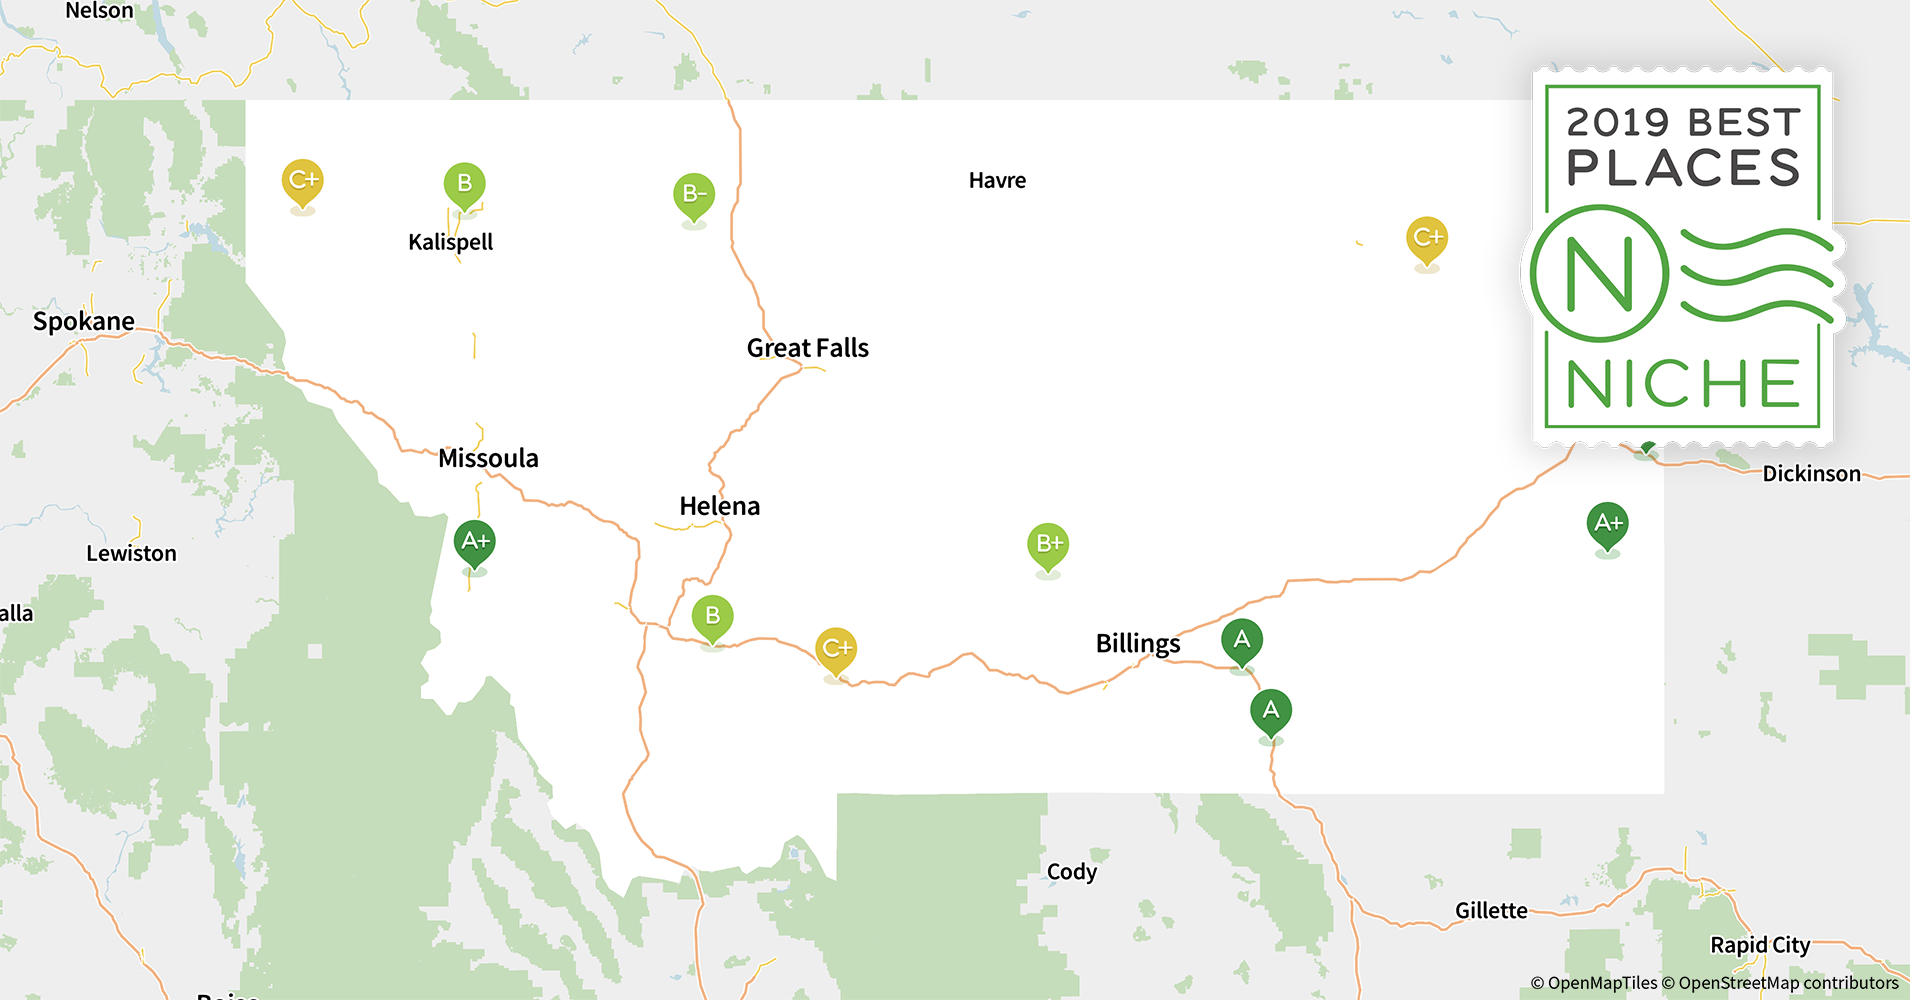 2019 Best Places to Live in Montana - Niche